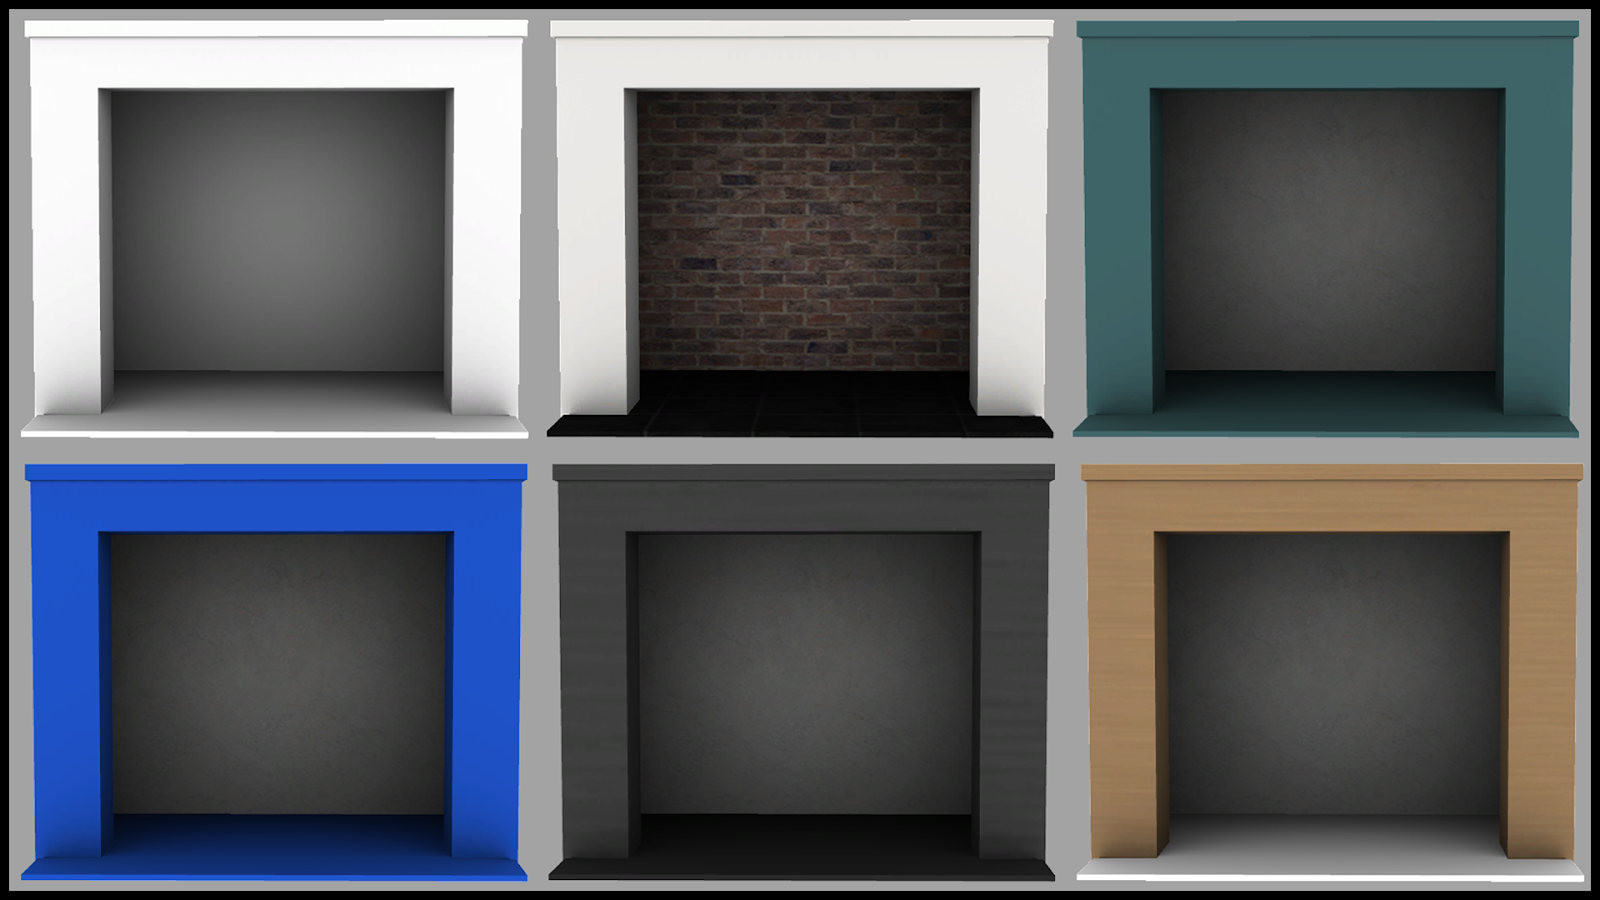 Download Sims 4 Pose Fireplace Wall Cutout Request